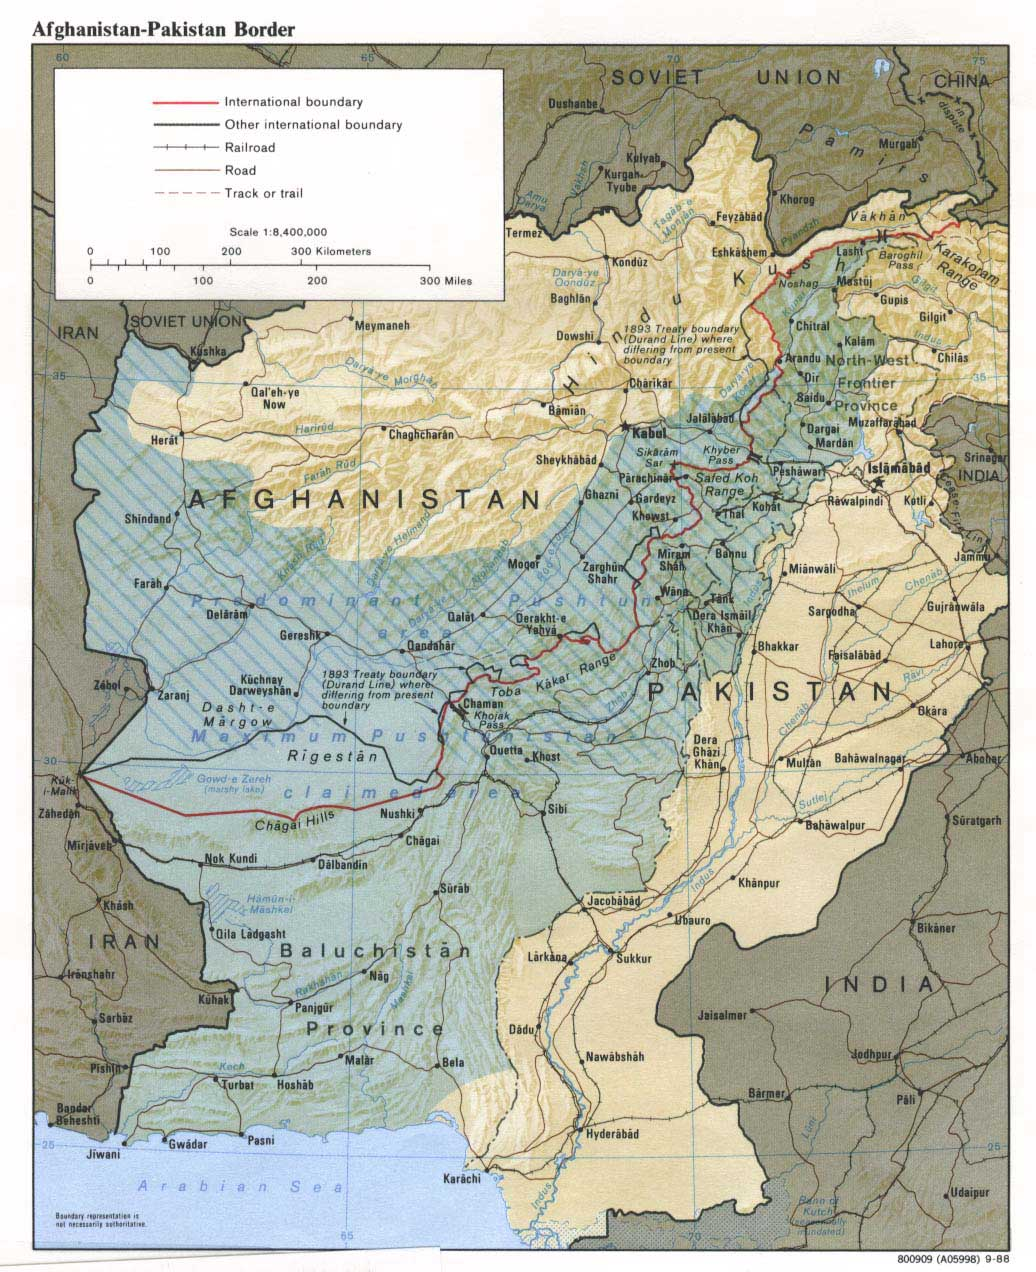 Map Of Afghanistan And Pakistan Map of Pakistan's Border with Afghanistan